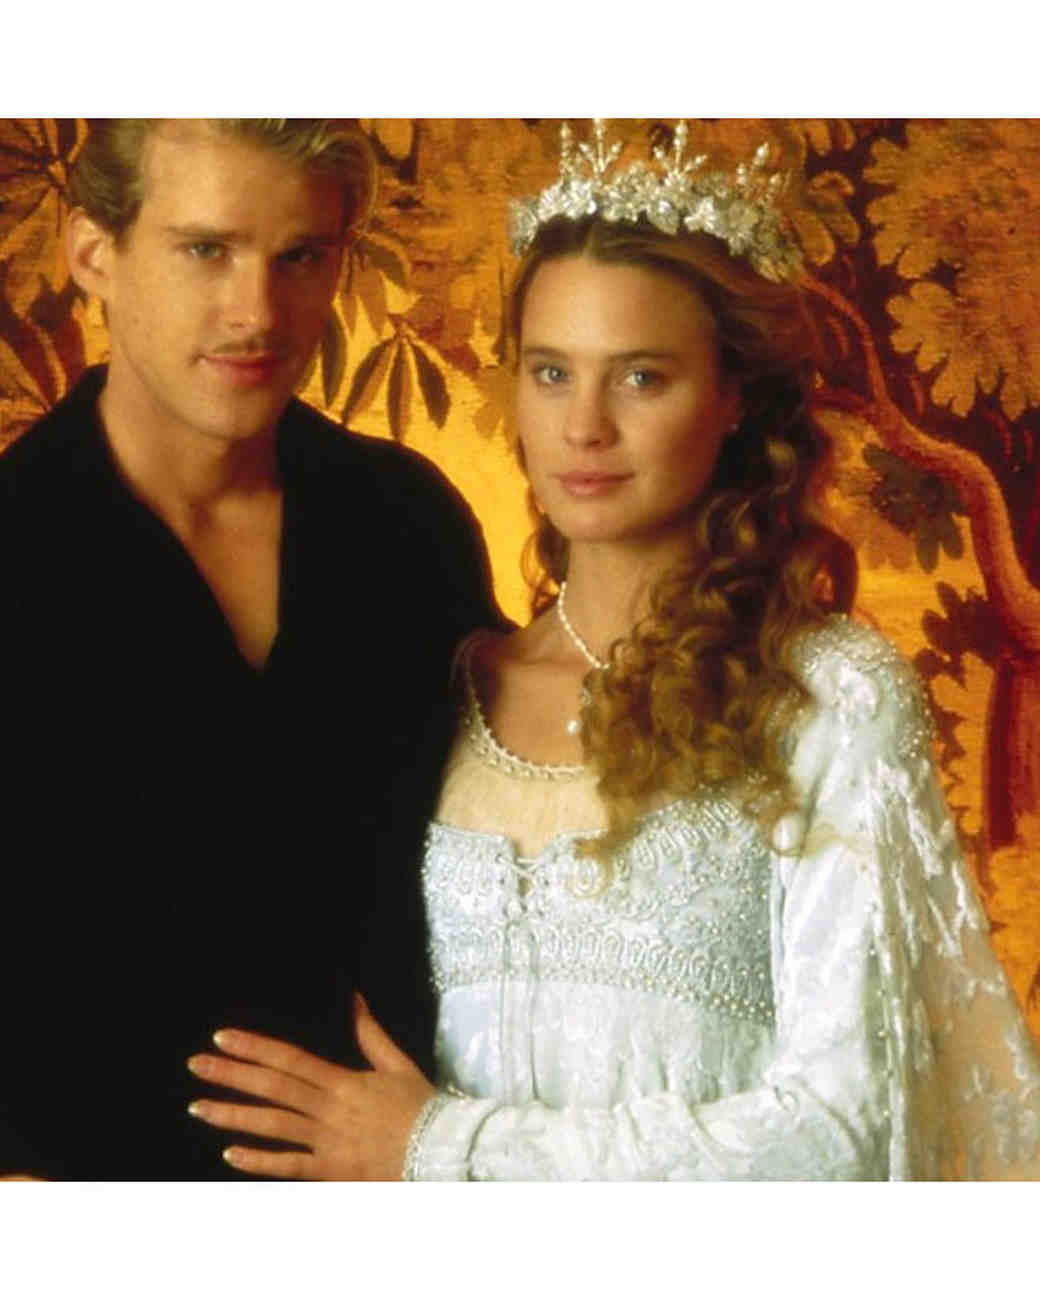 movie-wedding-dresses-the-princess-bride-robin-wright-0316.jpg